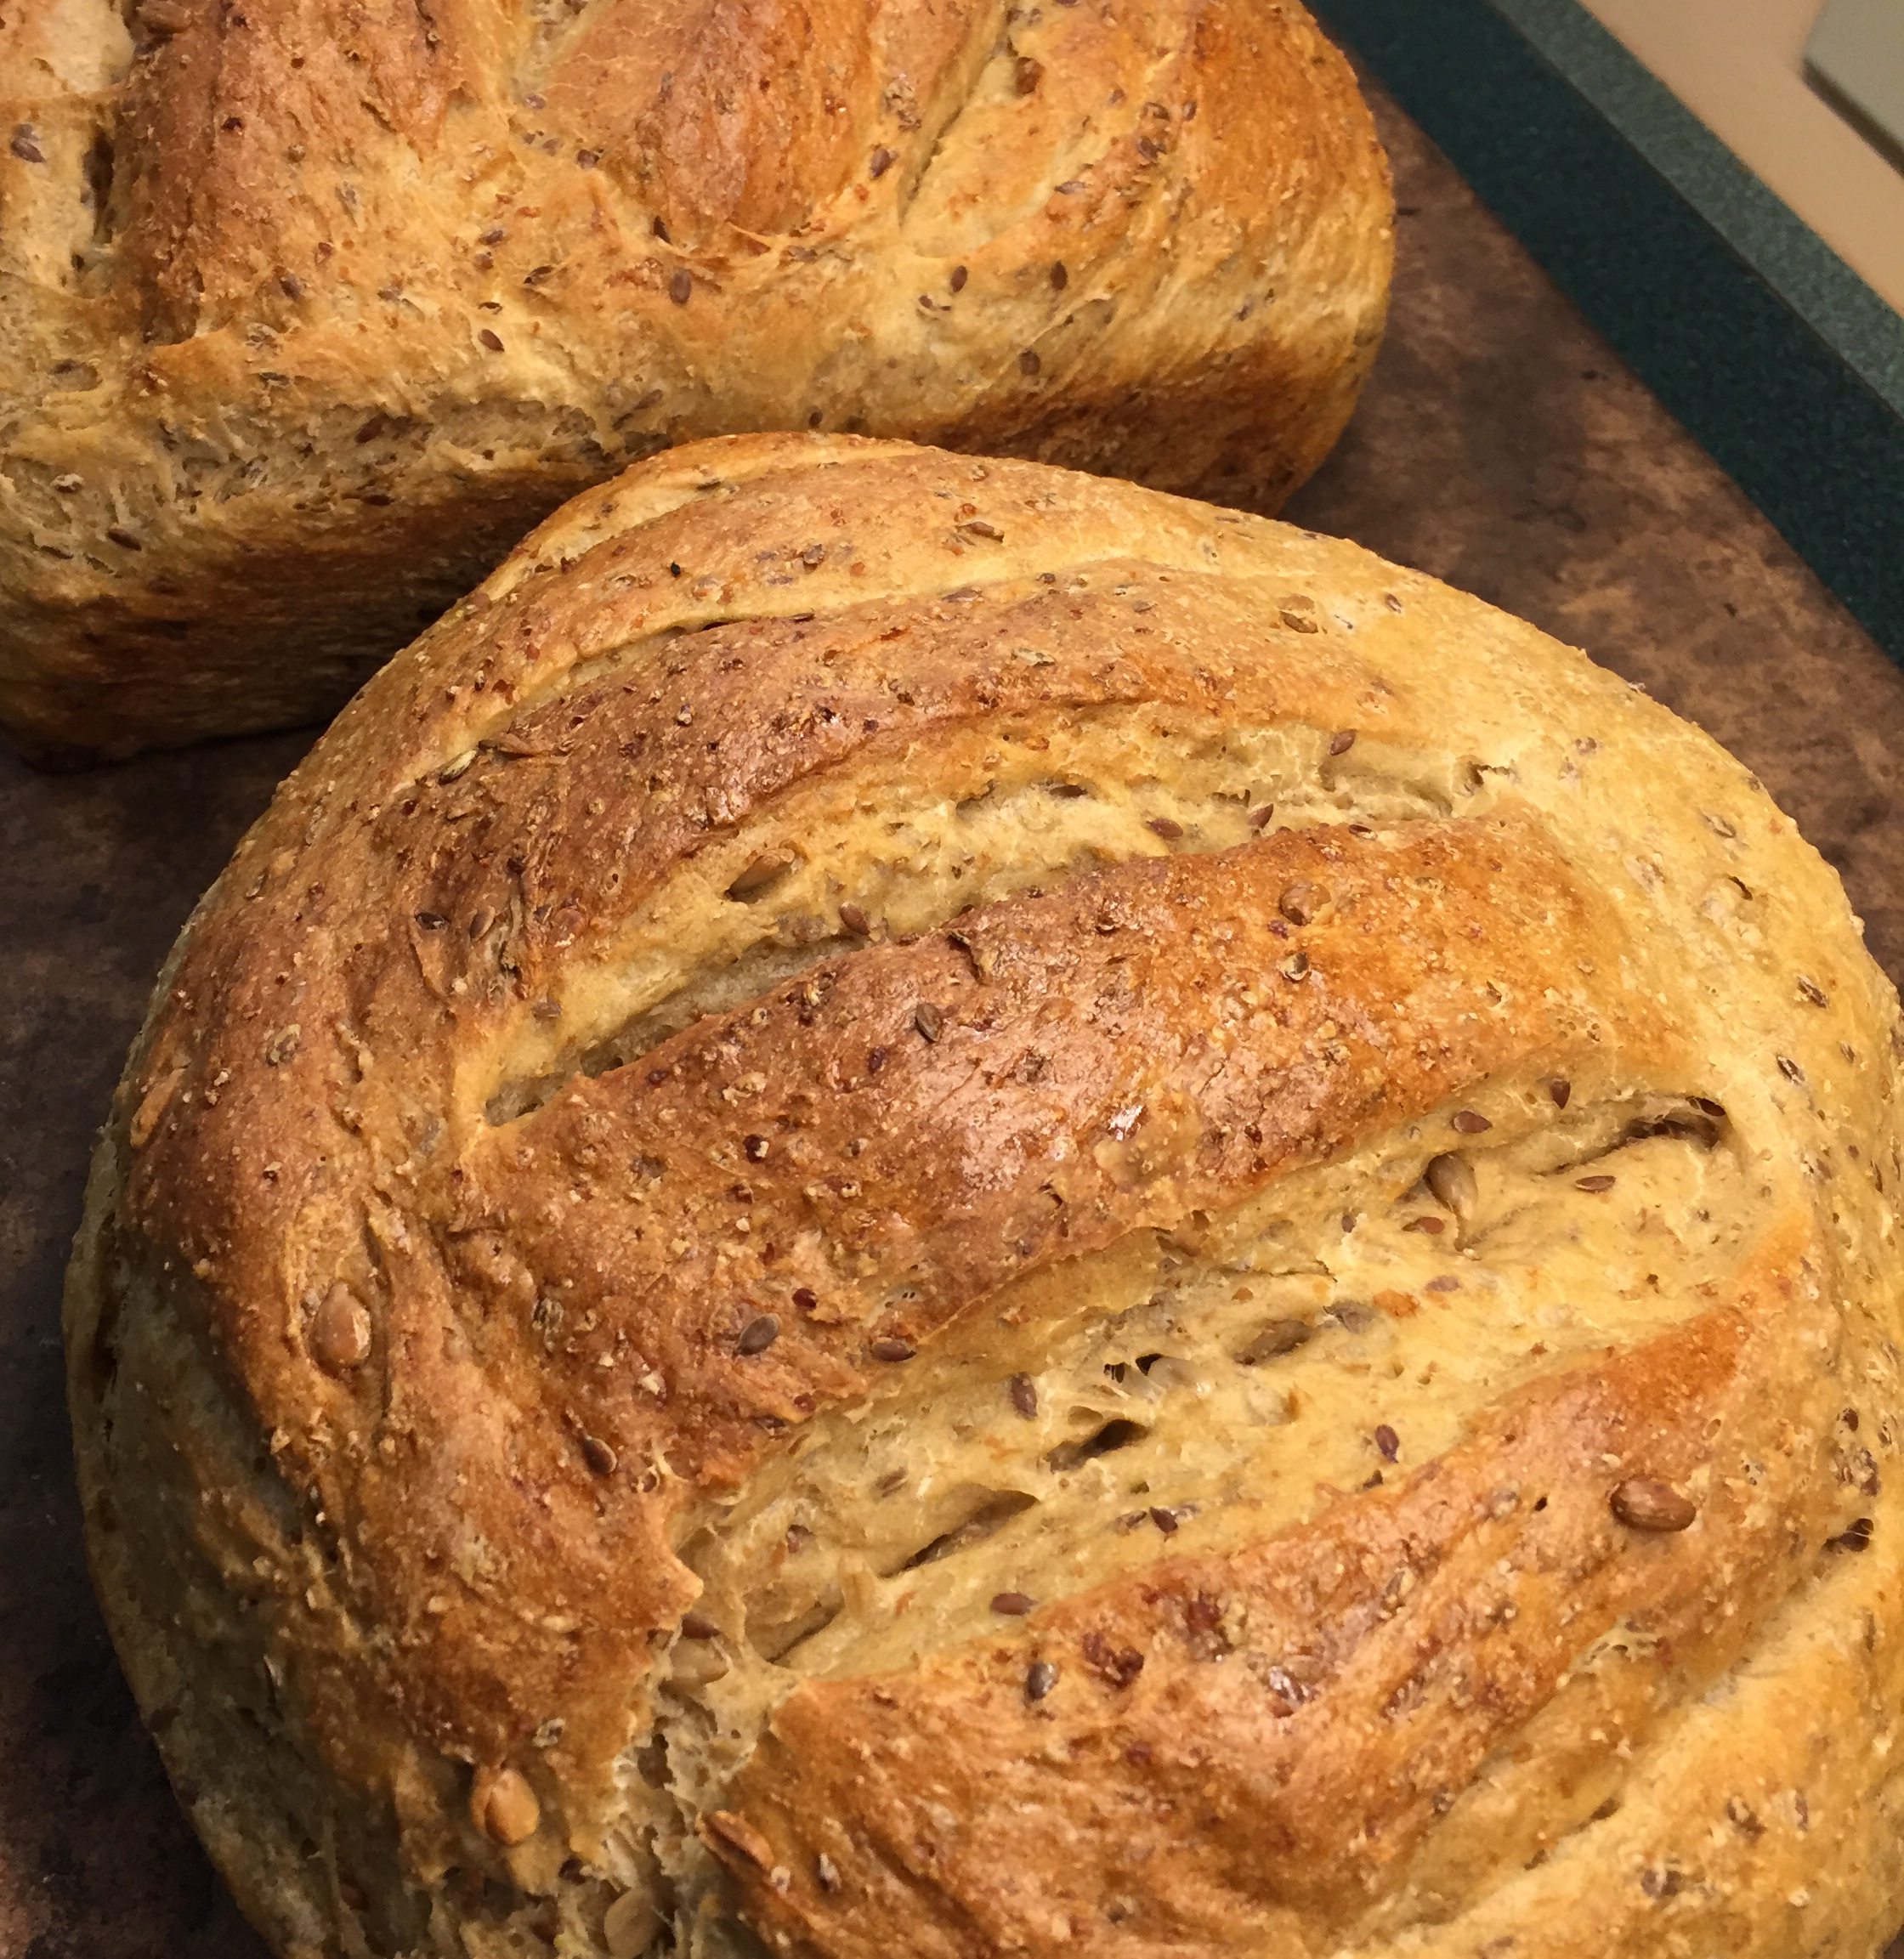 Cracked Wheat Sourdough Bread